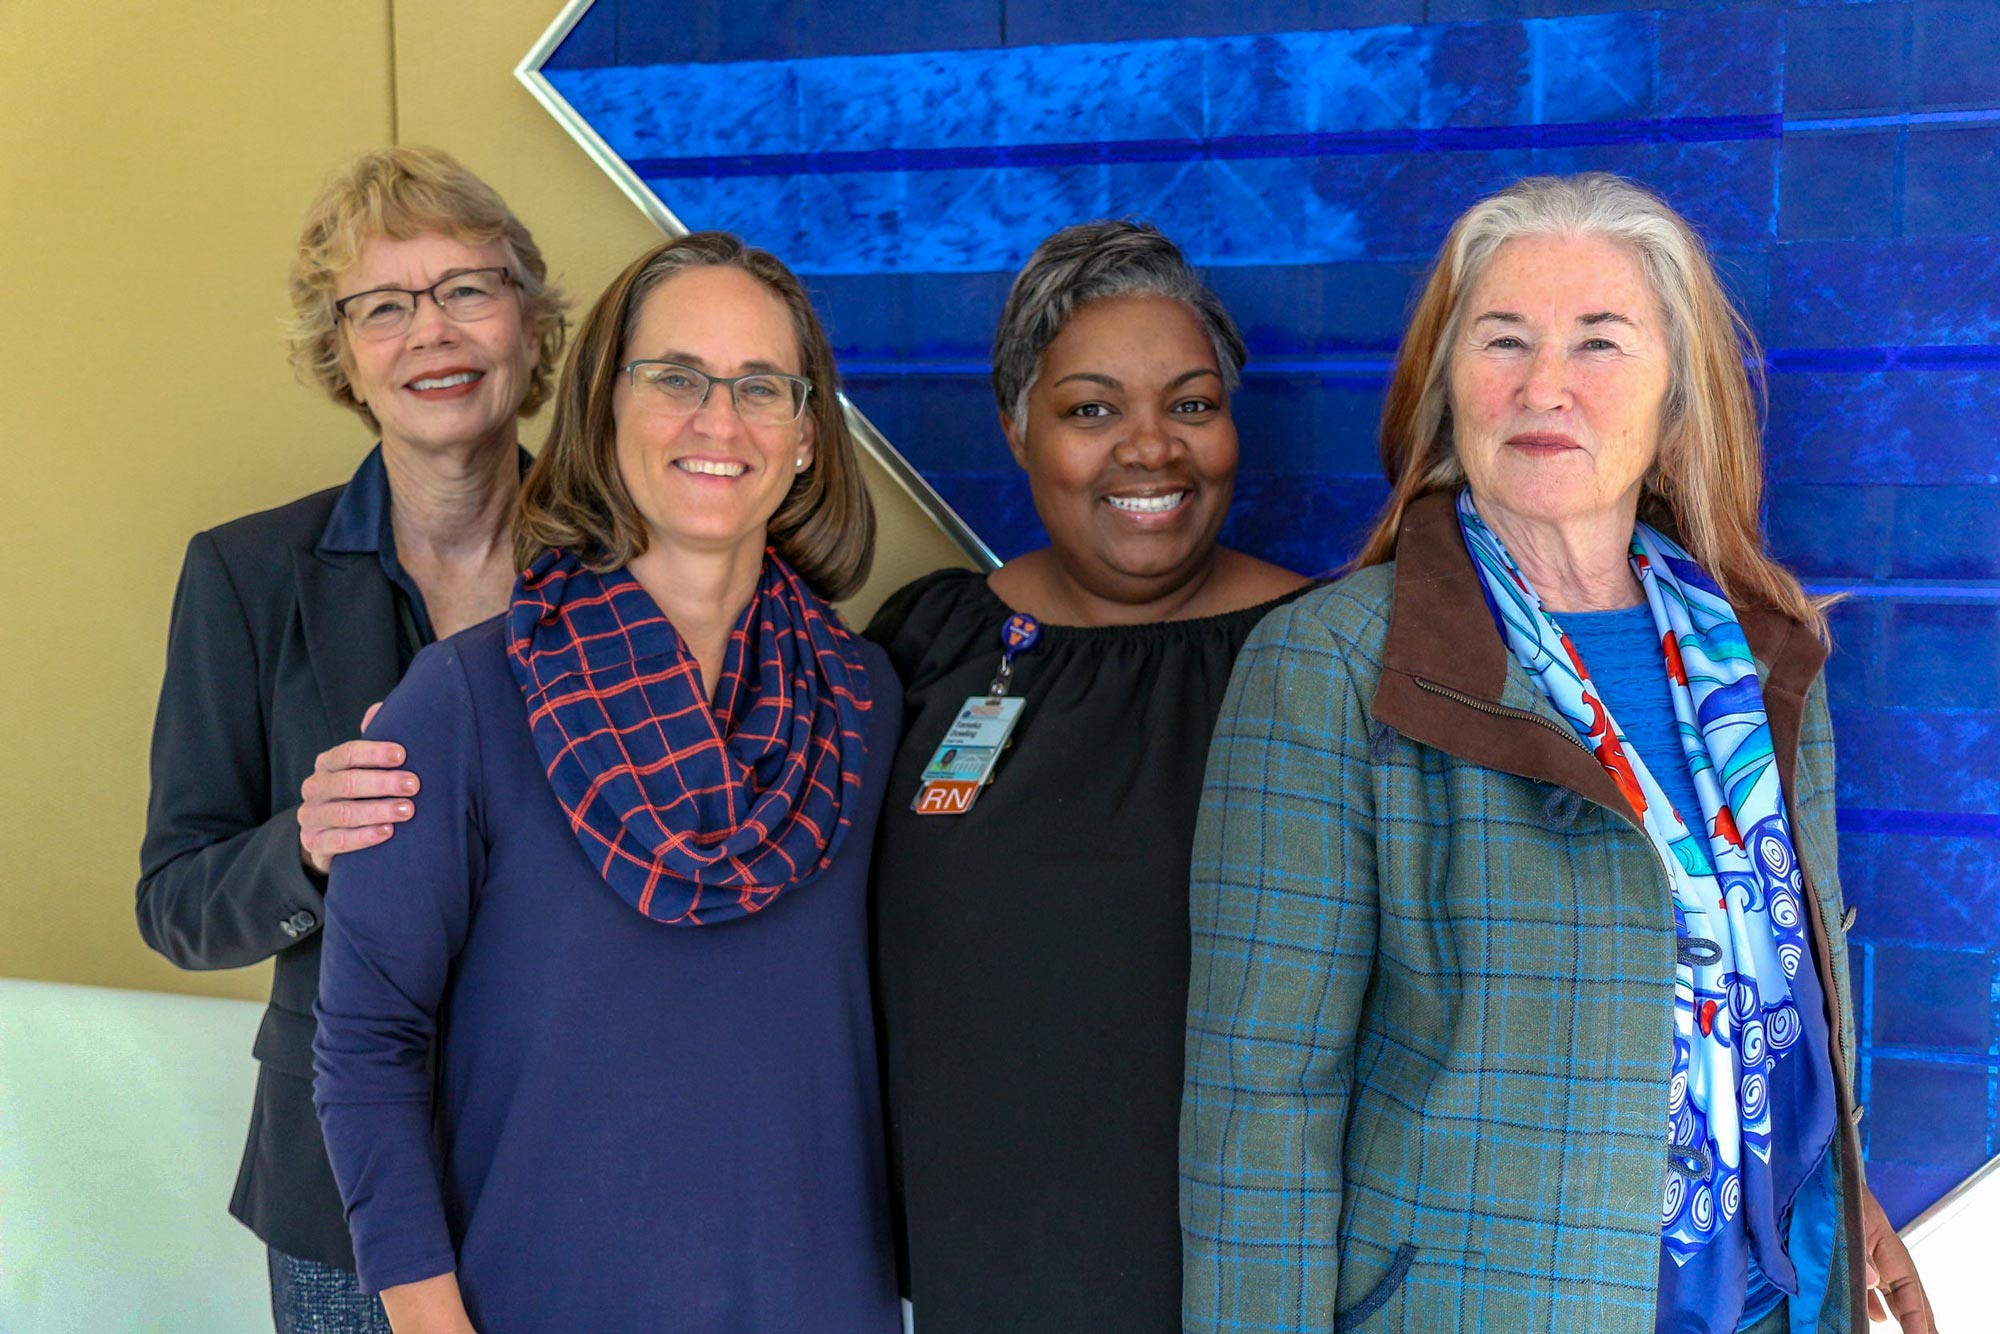 The School of Nursing team that oversees the new Conway grant initiatives includes, from left, Susan Kools, associate dean for diversity and inclusion; Bethany Coyne, assistant professor and BSN program director; Tomeka Dowling, assistant professor and RN